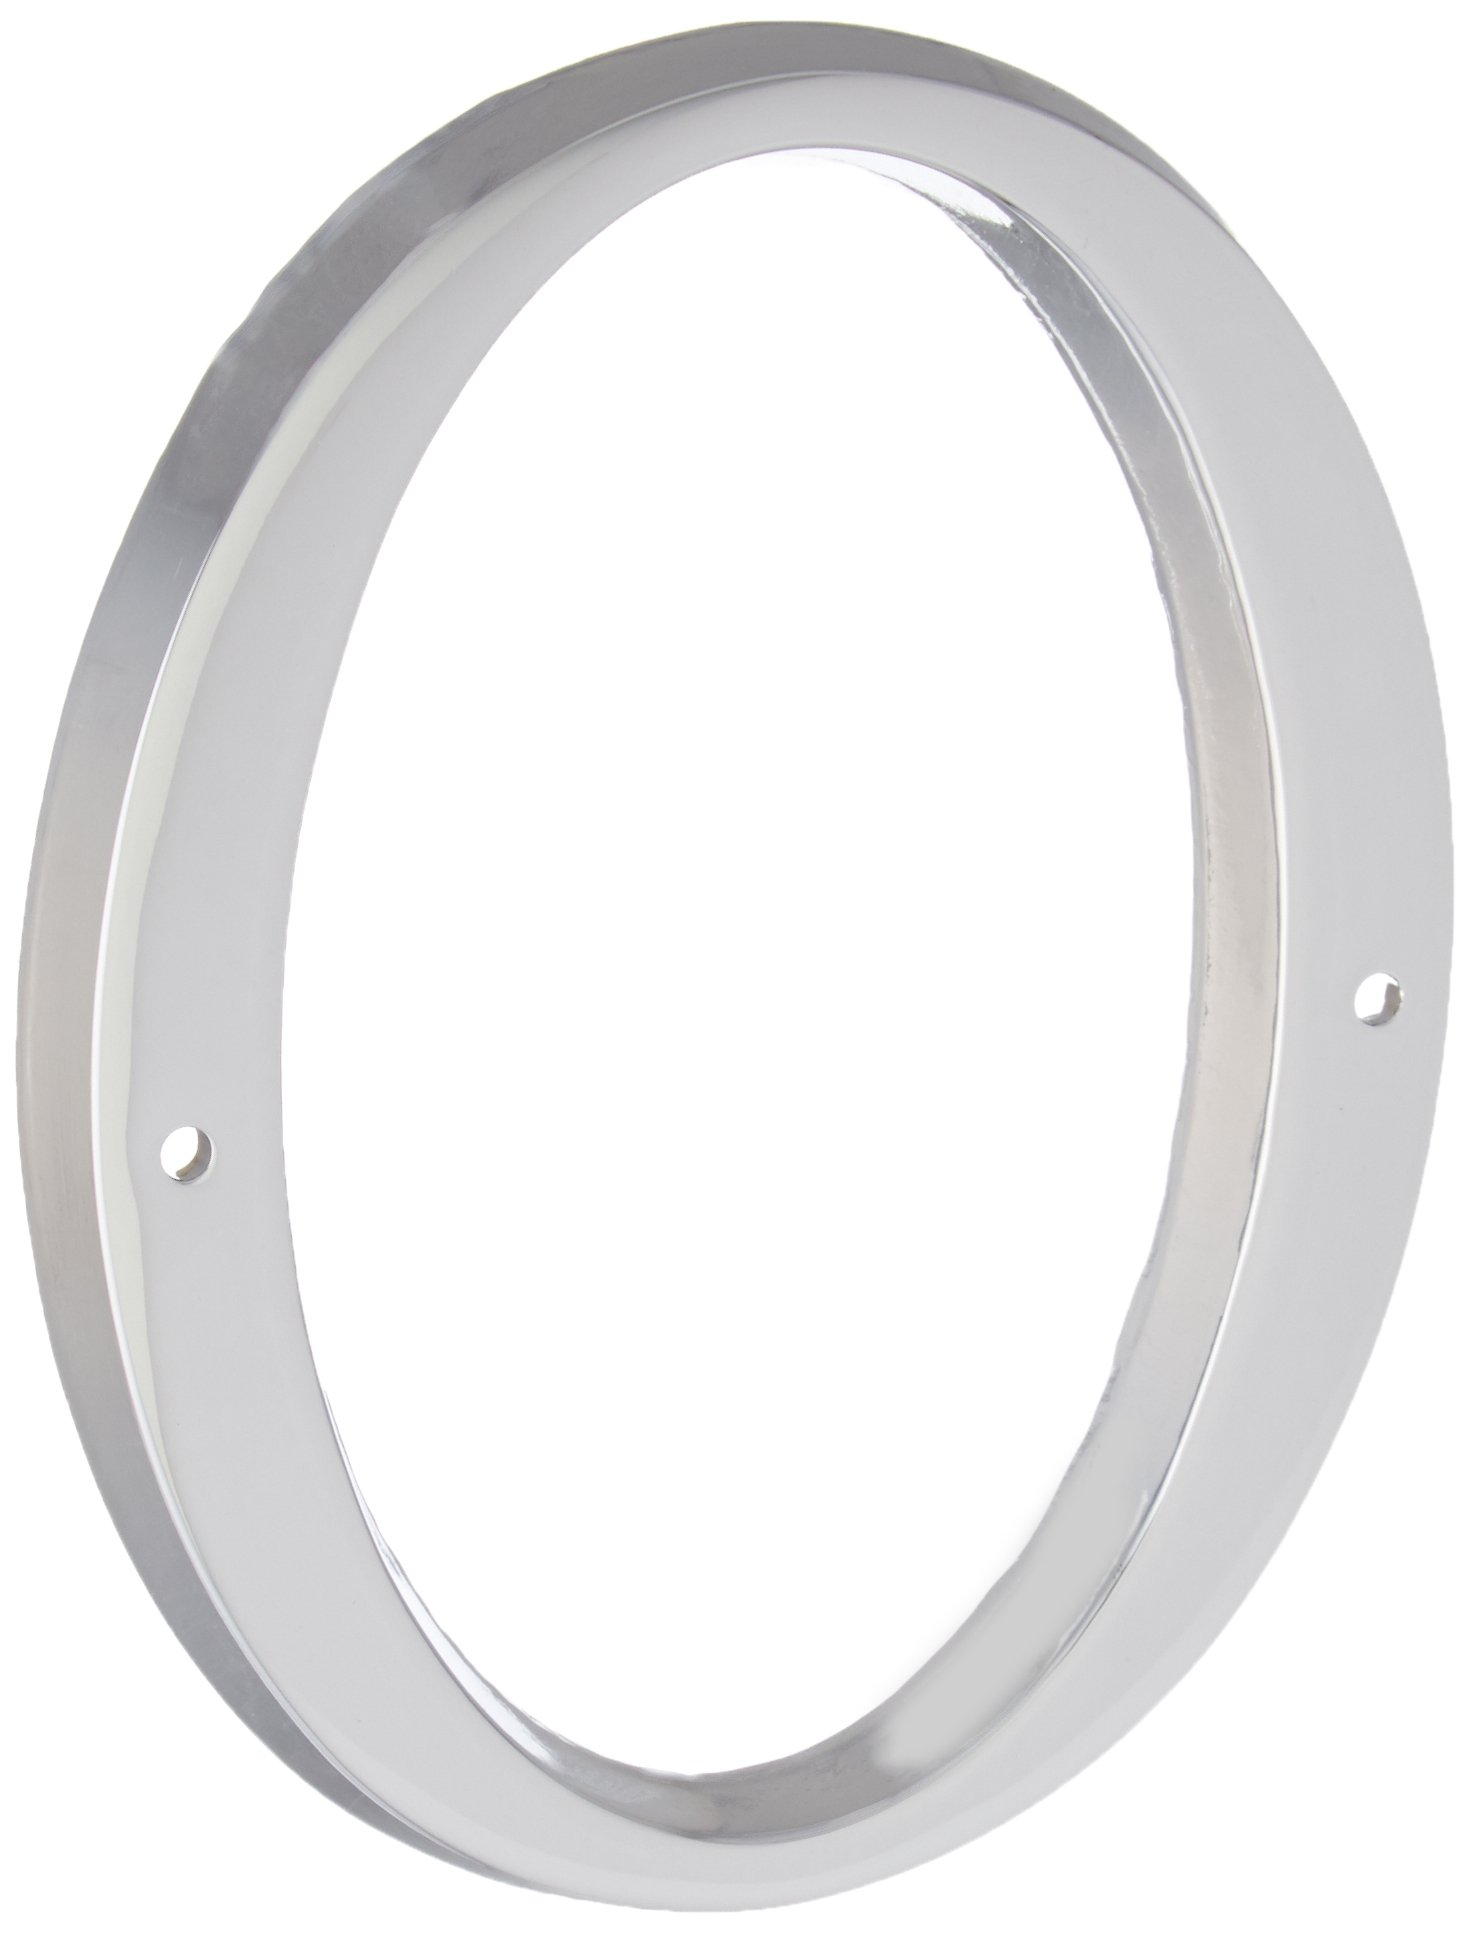 Baldwin 90670260# 0 House Number, Bright Chrome